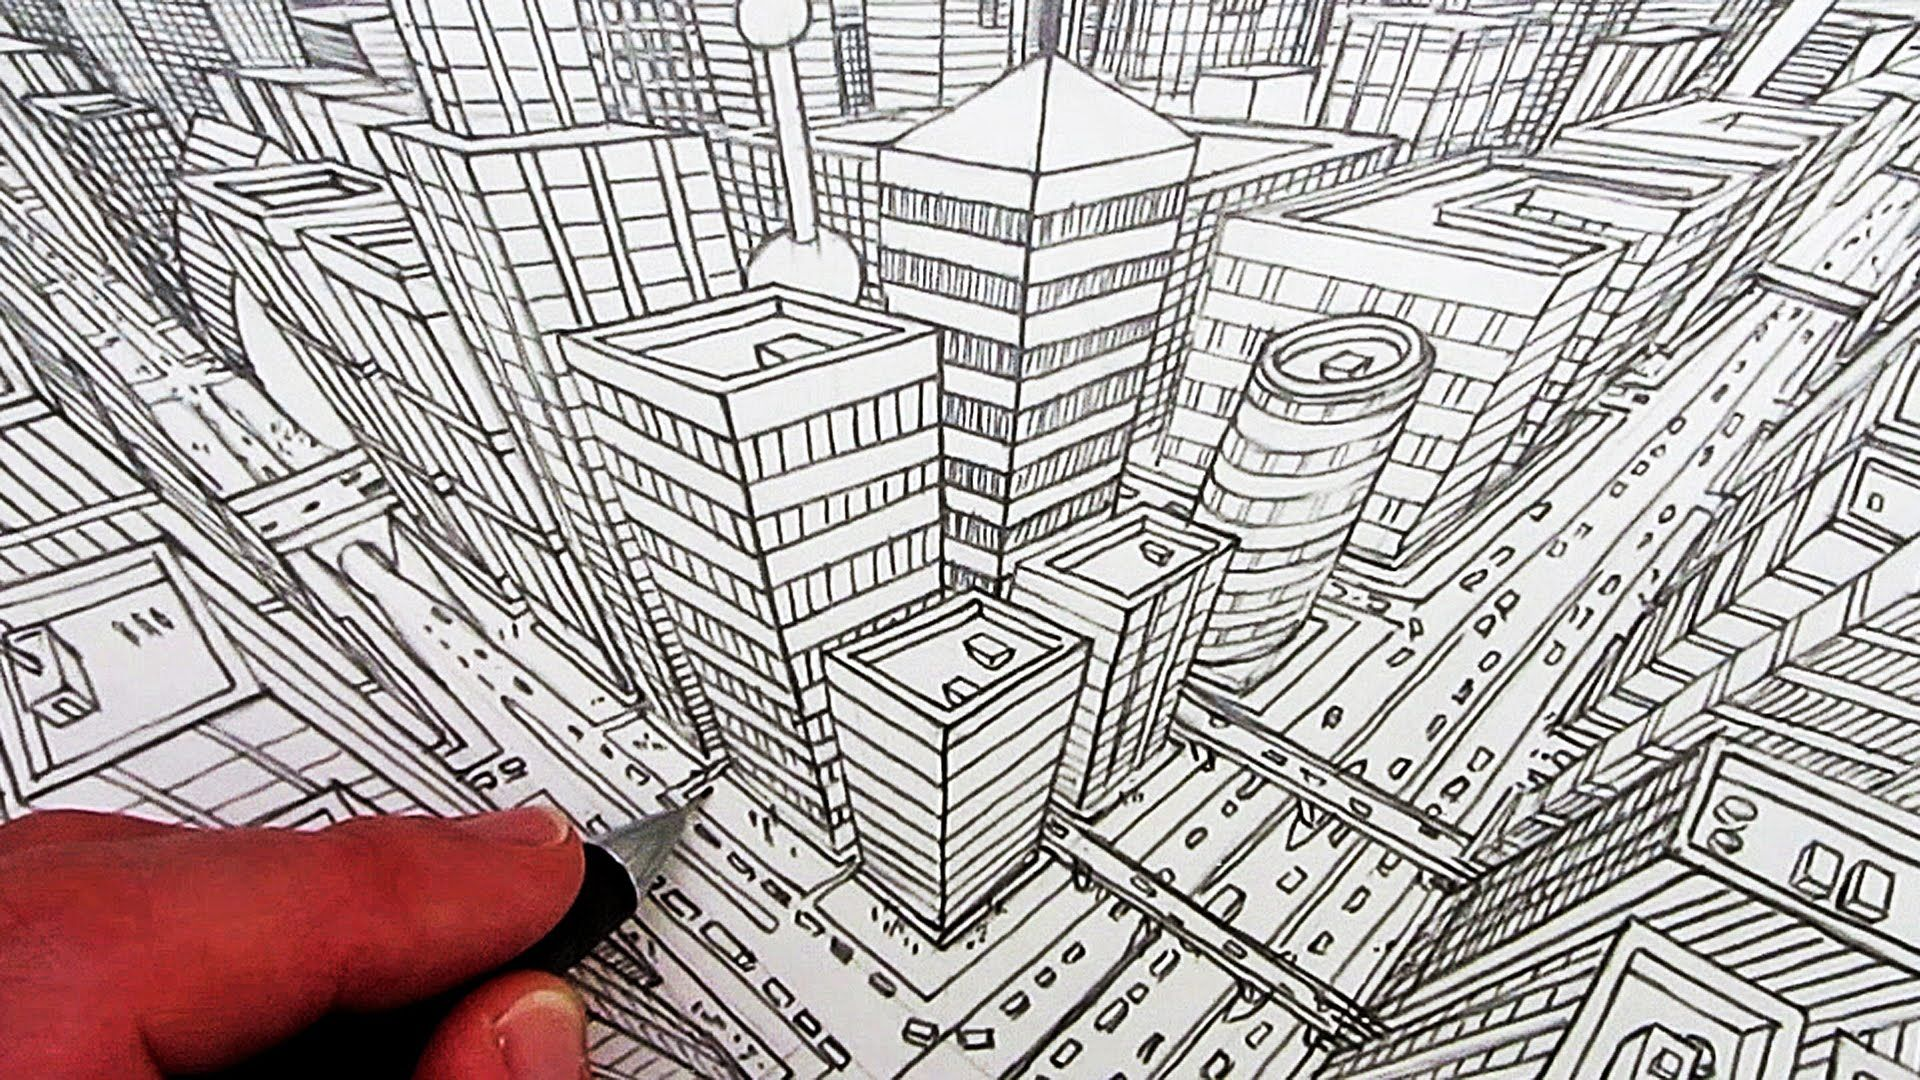 How To Draw A City In Three Point Perspective